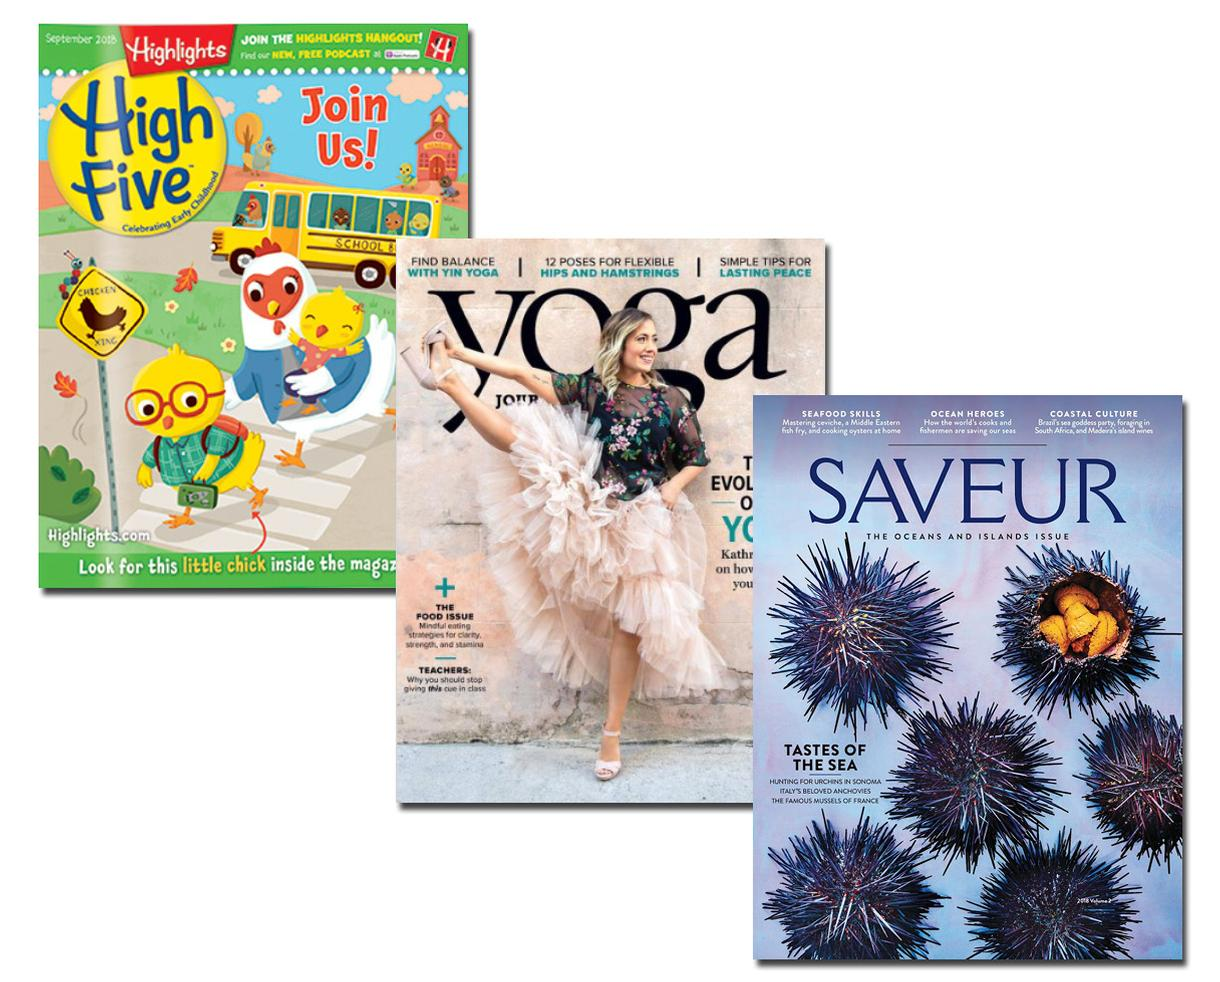 $2 Magazine Subscriptions - Choose Up to 5 Titles From Your Favorite Top Publications!